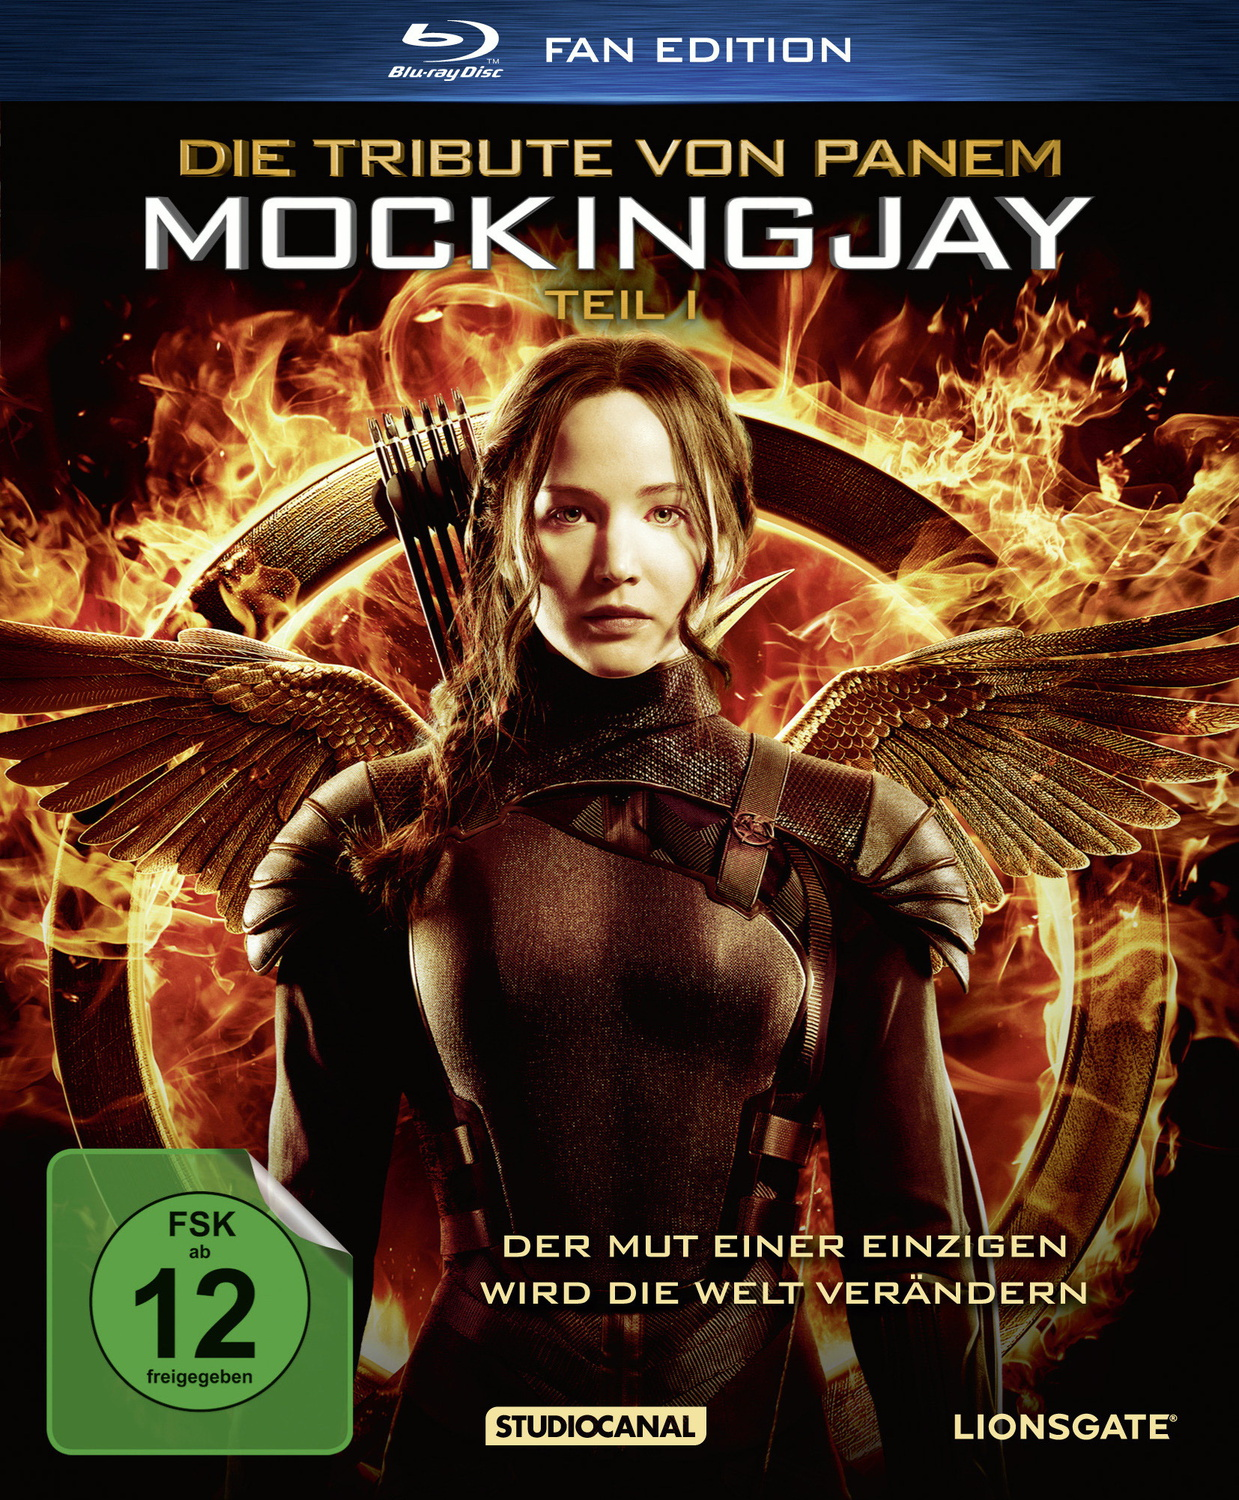 Die Tribute von Panem - Mockingjay Teil 1 [Fan Edition inkl. Poster, Booklet]